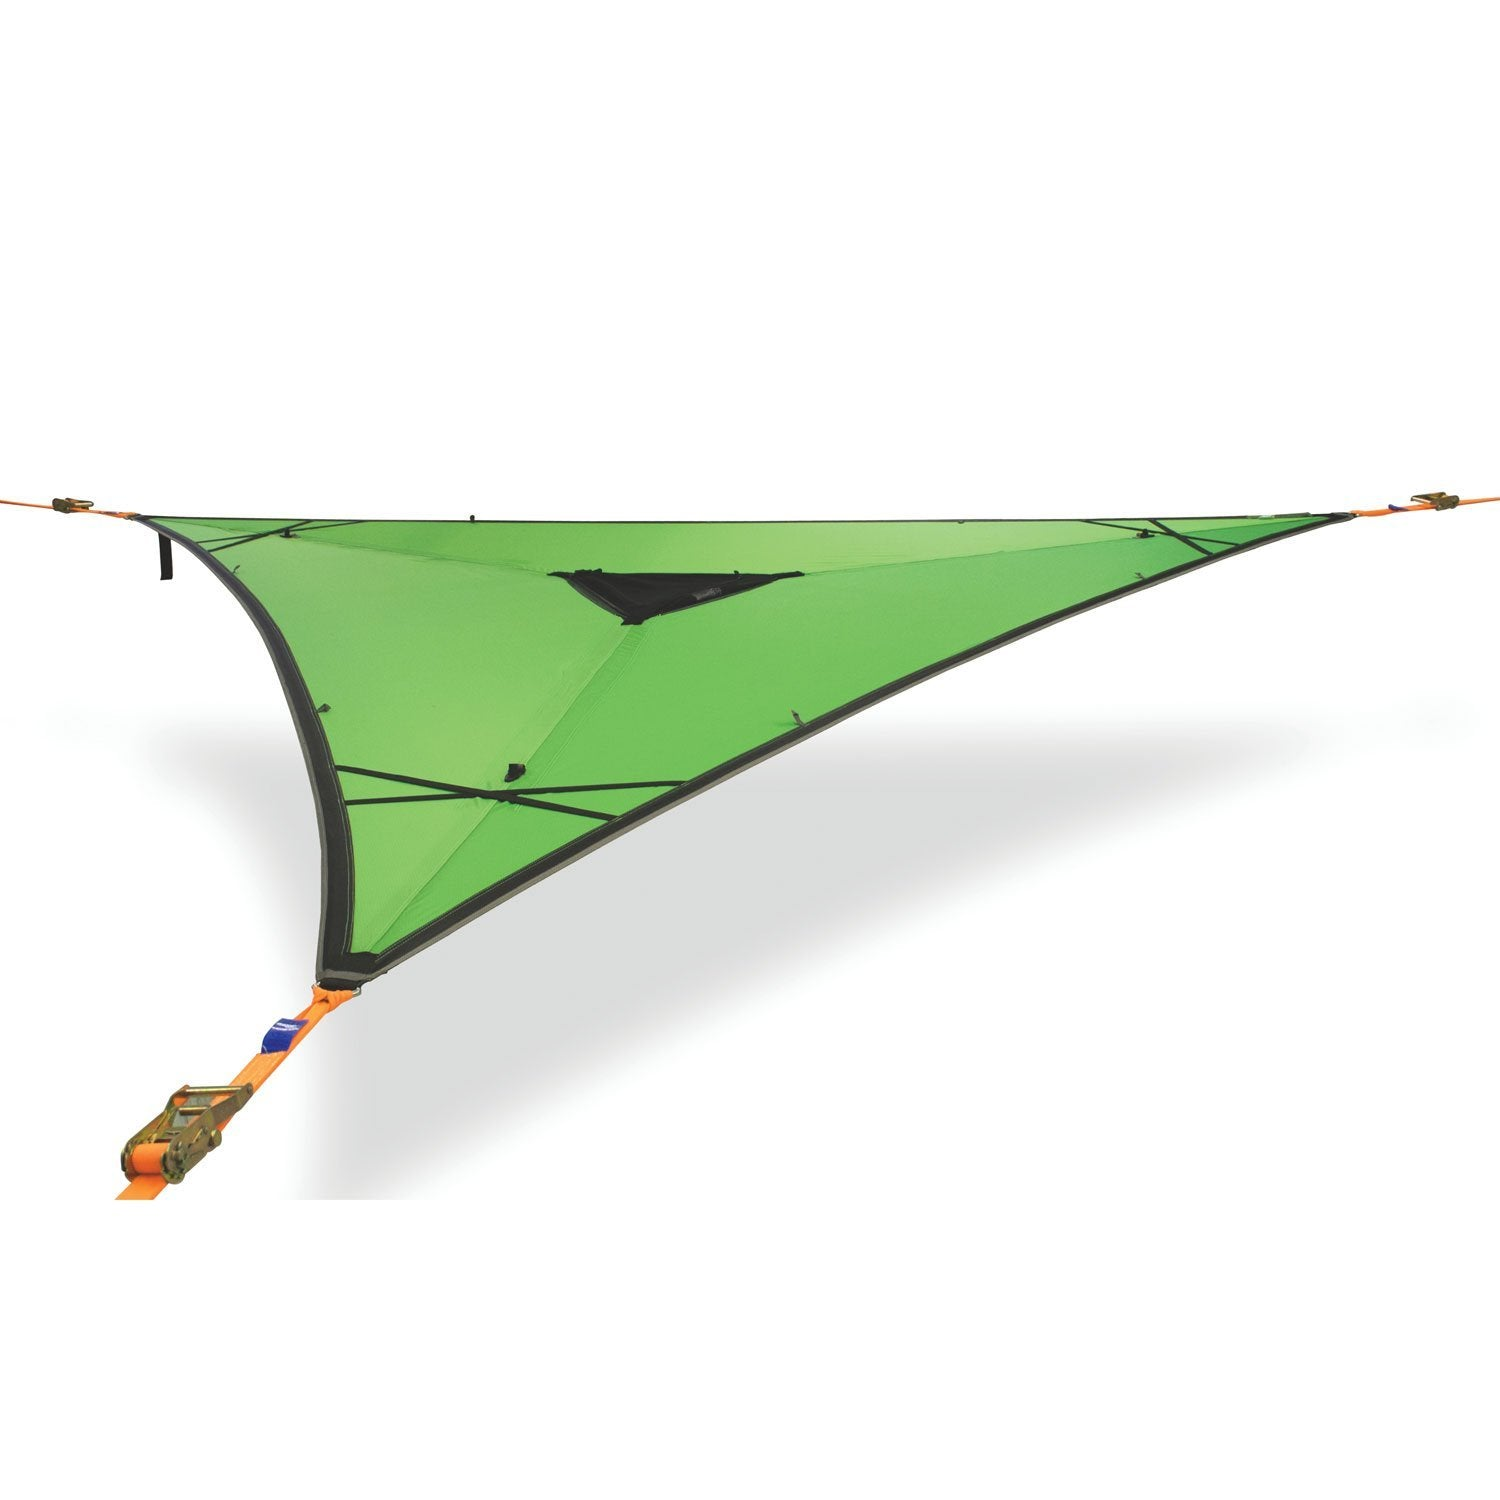 Tentsile | Trillium Hammock | 3 Person Tree Hammock | Triple Camping Hammock | Green